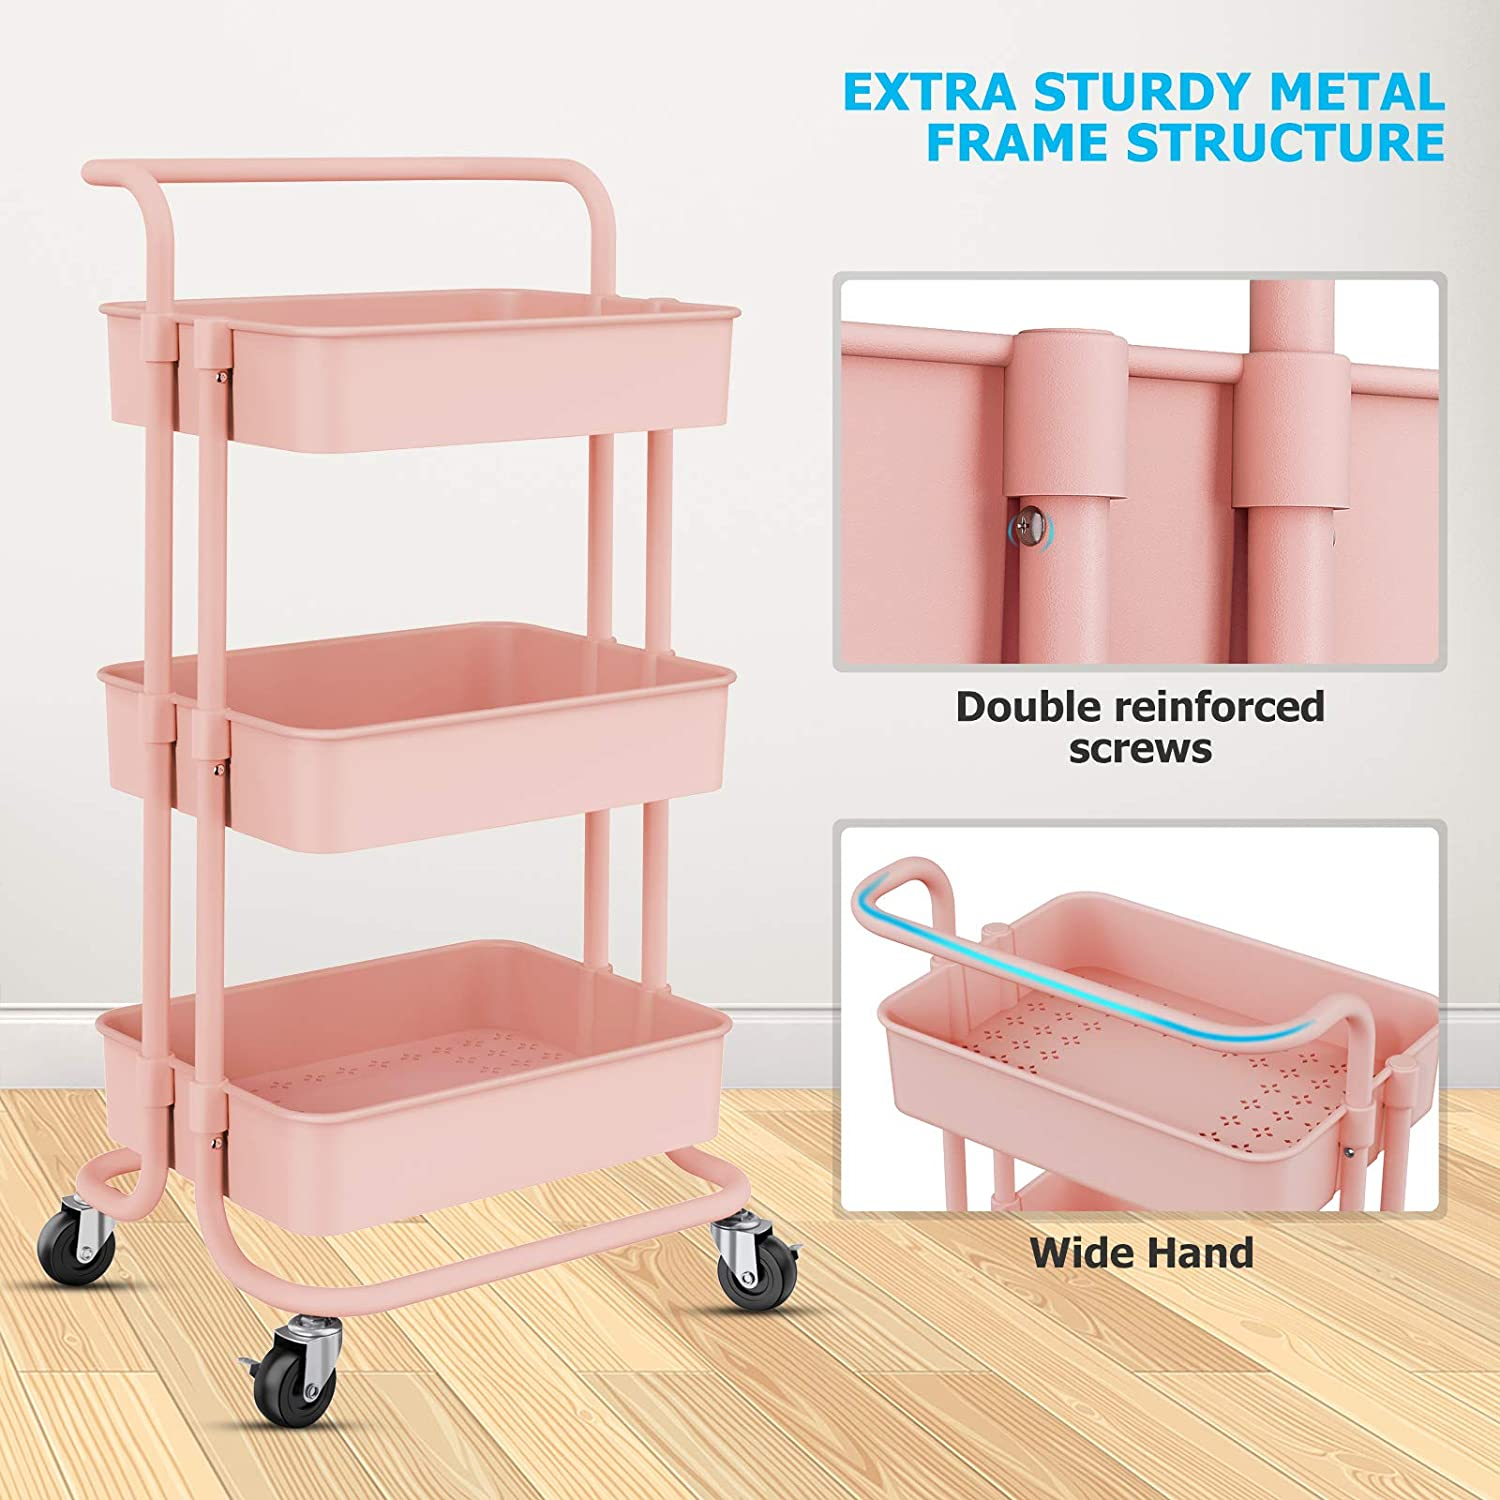 Rolling Storage Cart with Handles and Roller Wheels 3 Tier Craft Cart for Kitchen, Storage, Bathroom (Pink)